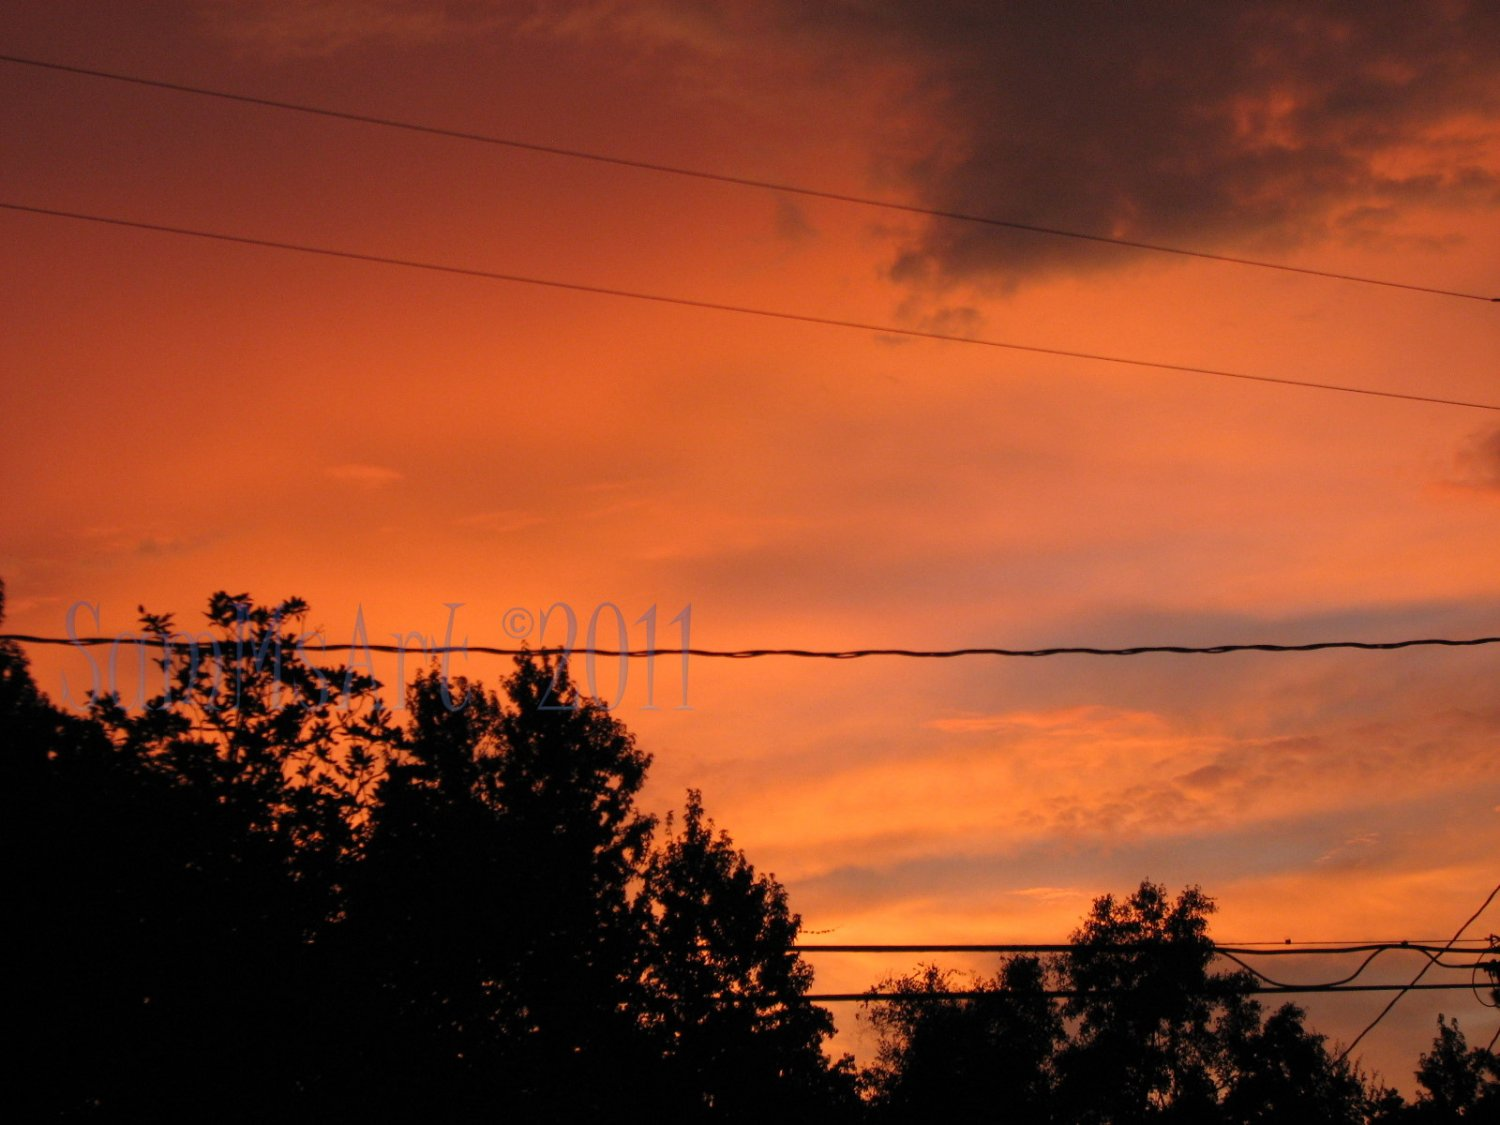 August 31 - 8x10 Print, Digital Fine Art Image Photo - Sunset, summer, fall, Power lines, Clouds